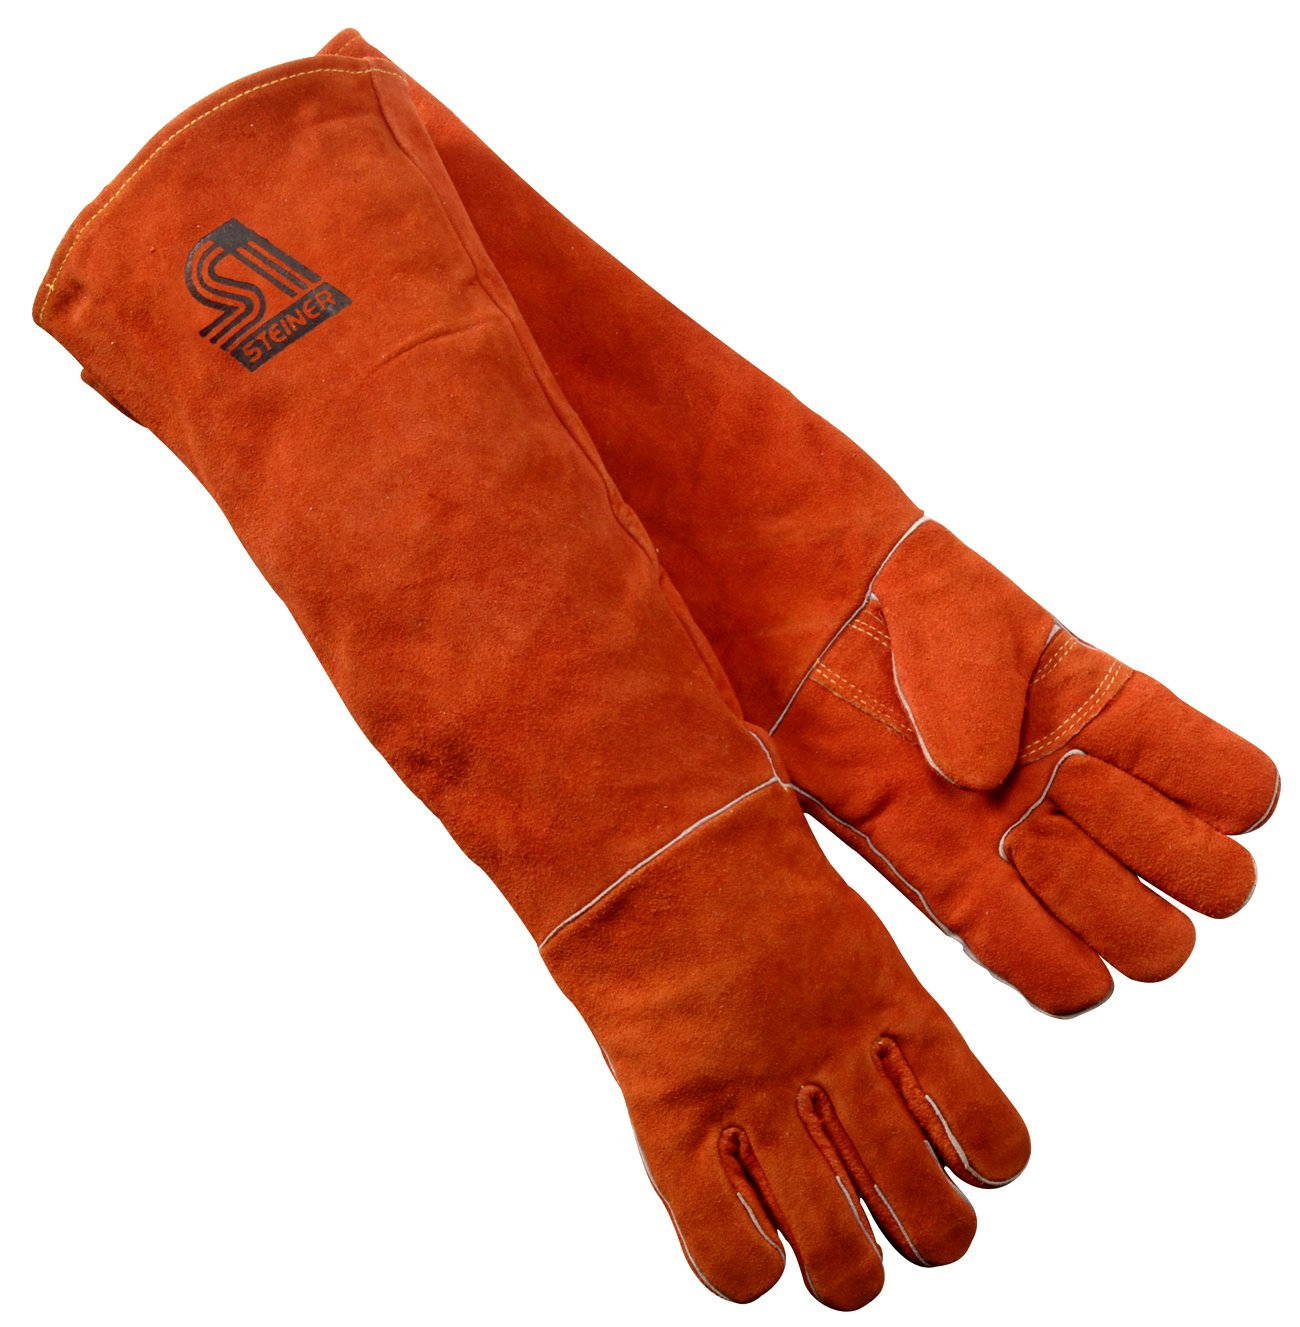 Steiner 21923-L Welding Gloves, Burnt orange Y-Series 23-Inch Length Shoulder Split Cowhide, Foam Lined, Large by Steiner